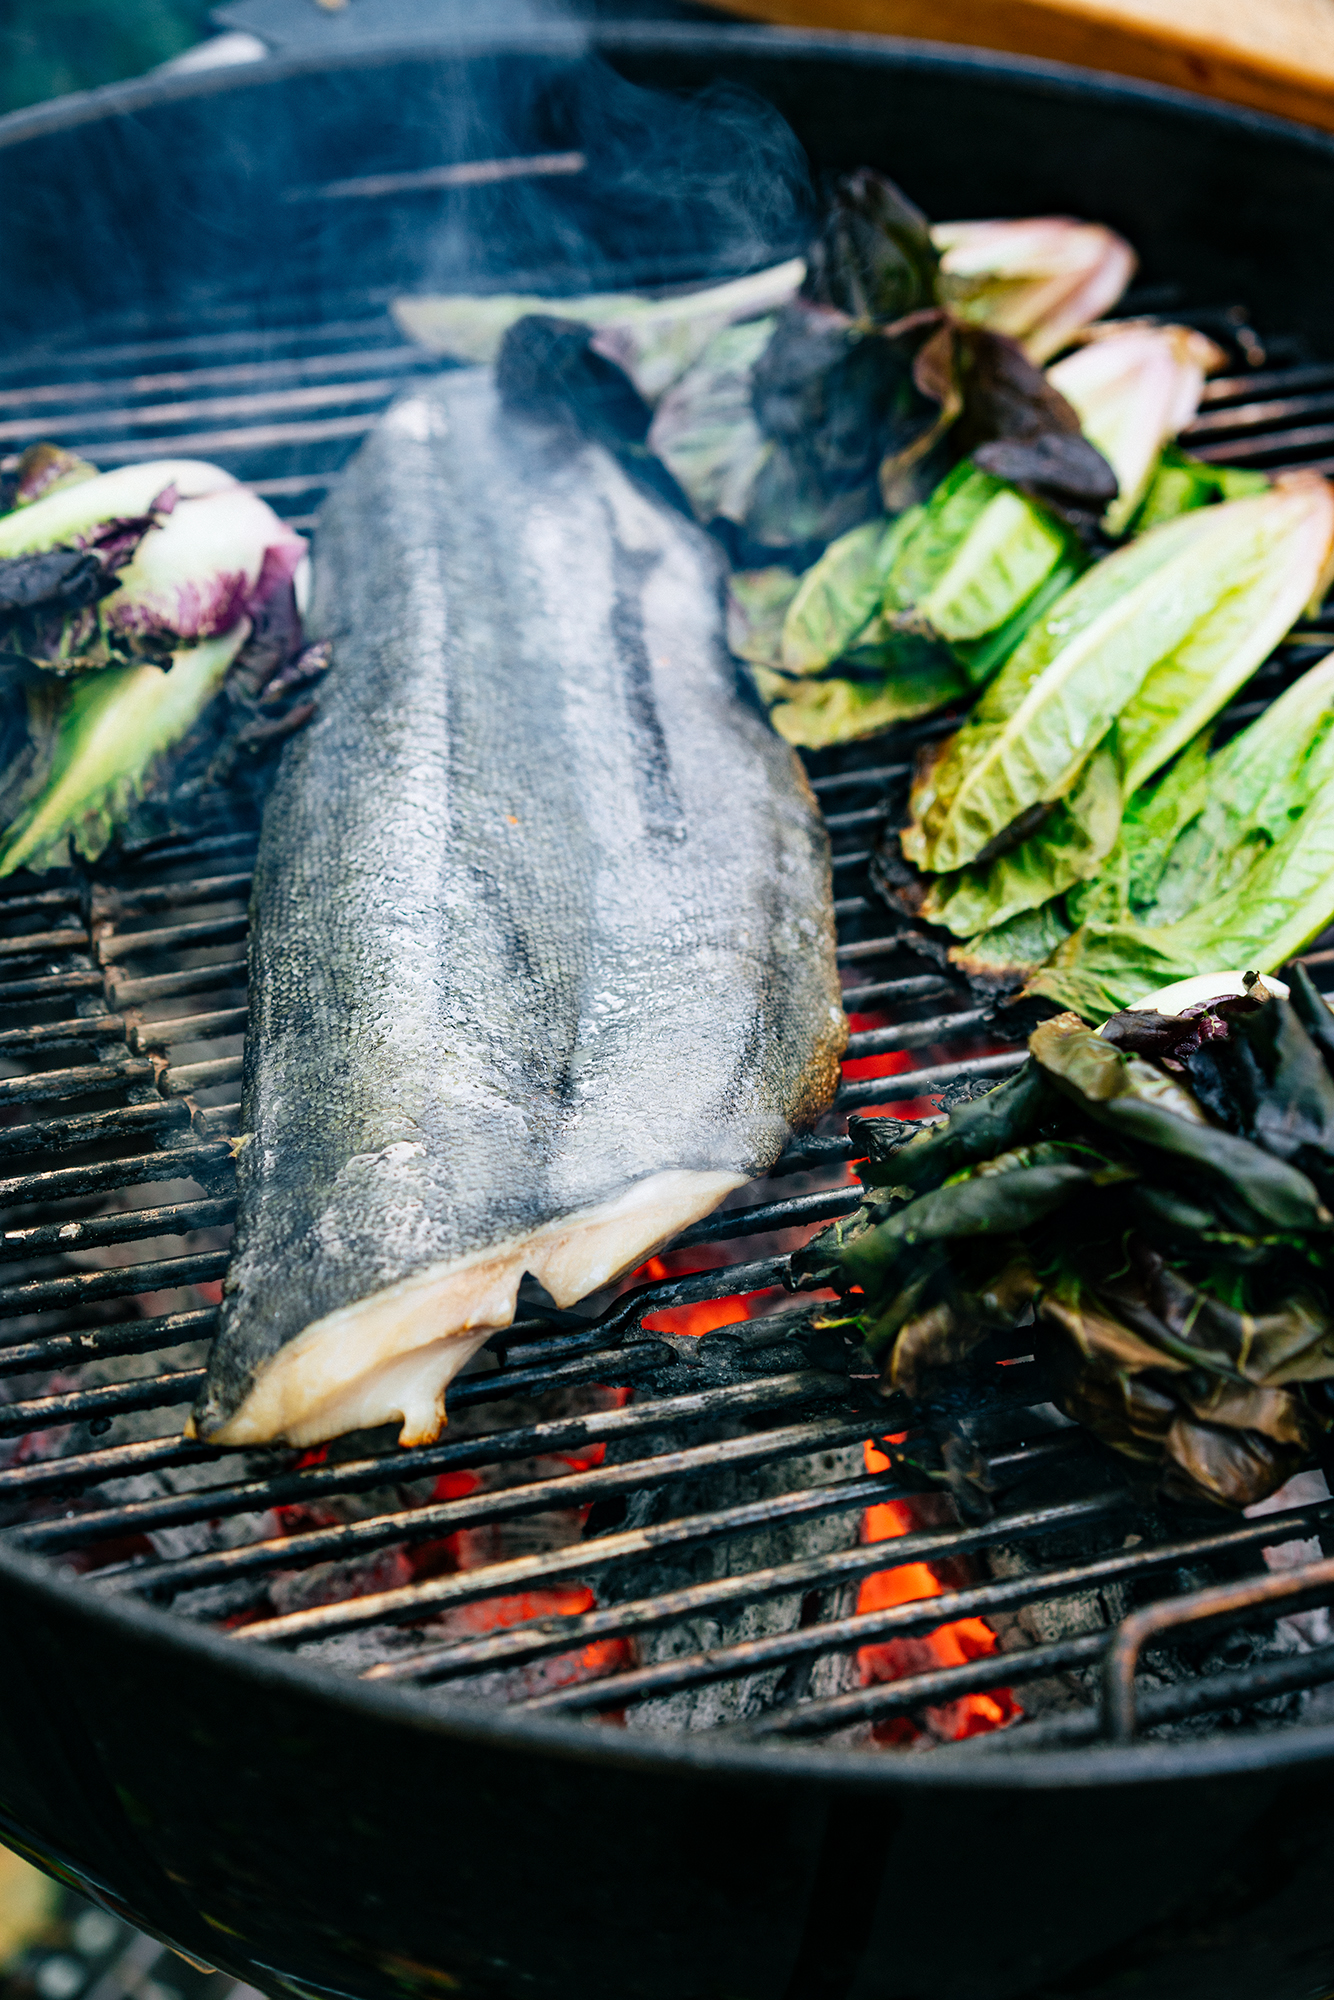 Fish and vegetables on a charcoal grill